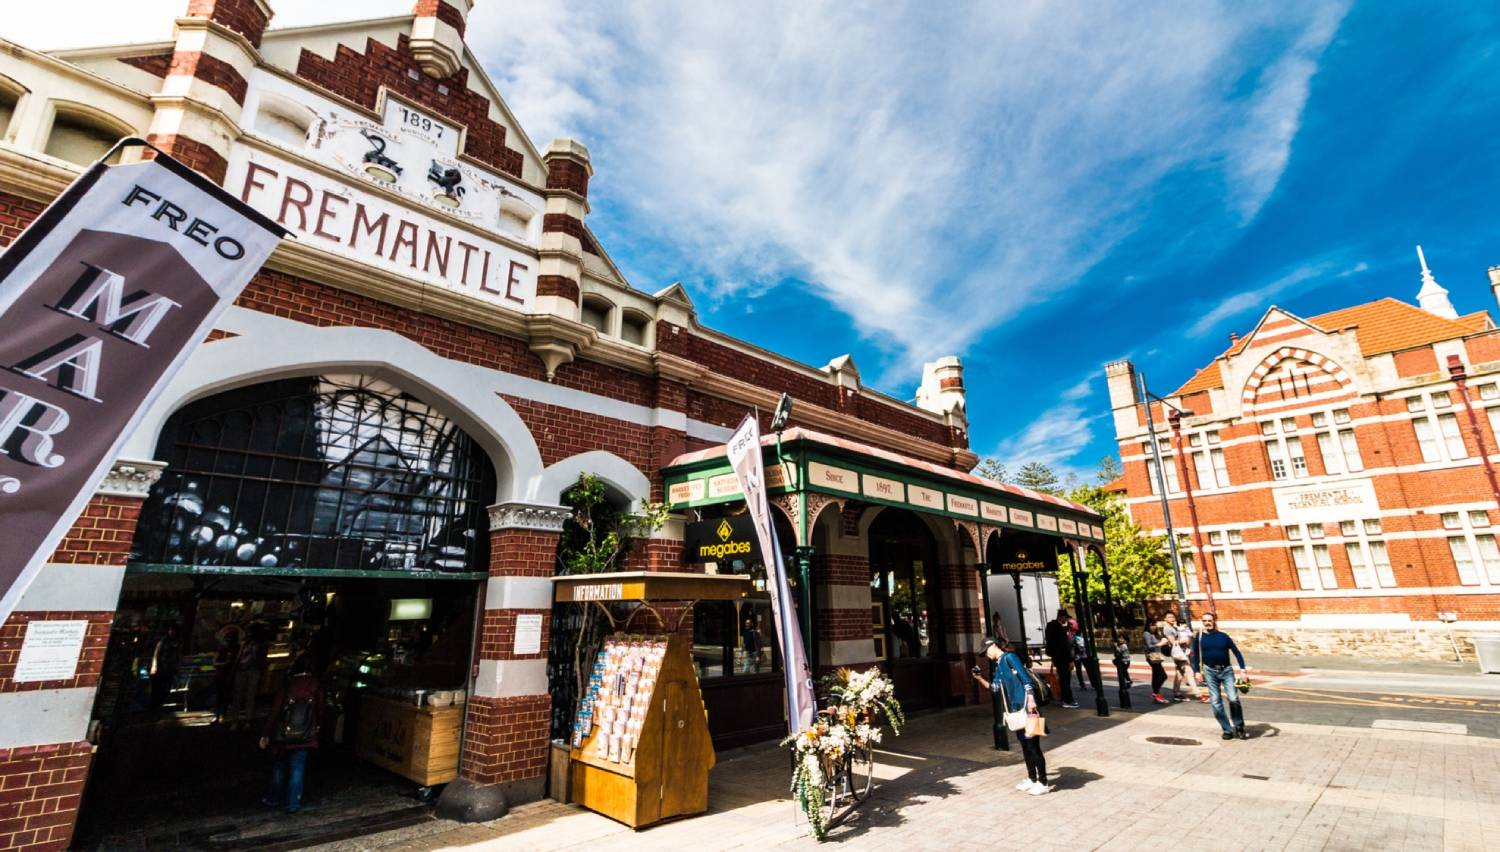 Fremantle - Things To Do In Perth